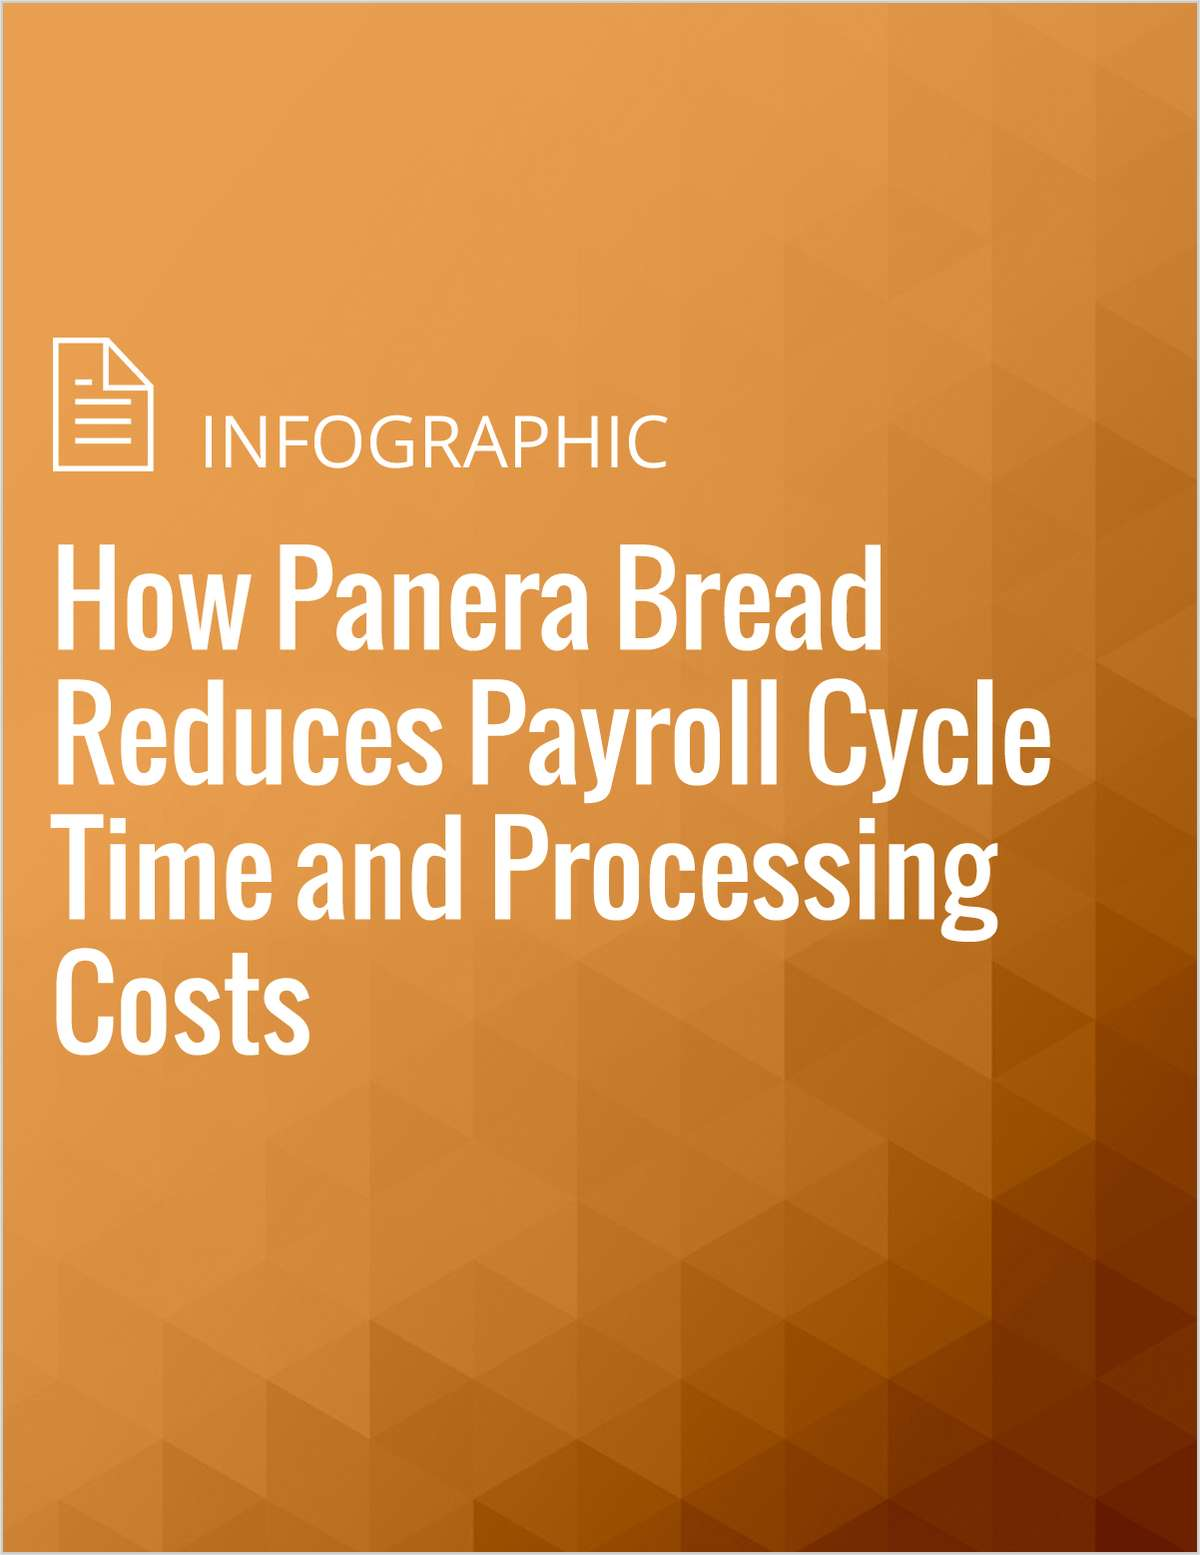 How Panera Bread Reduces Payroll Cycle Time and Processing Costs